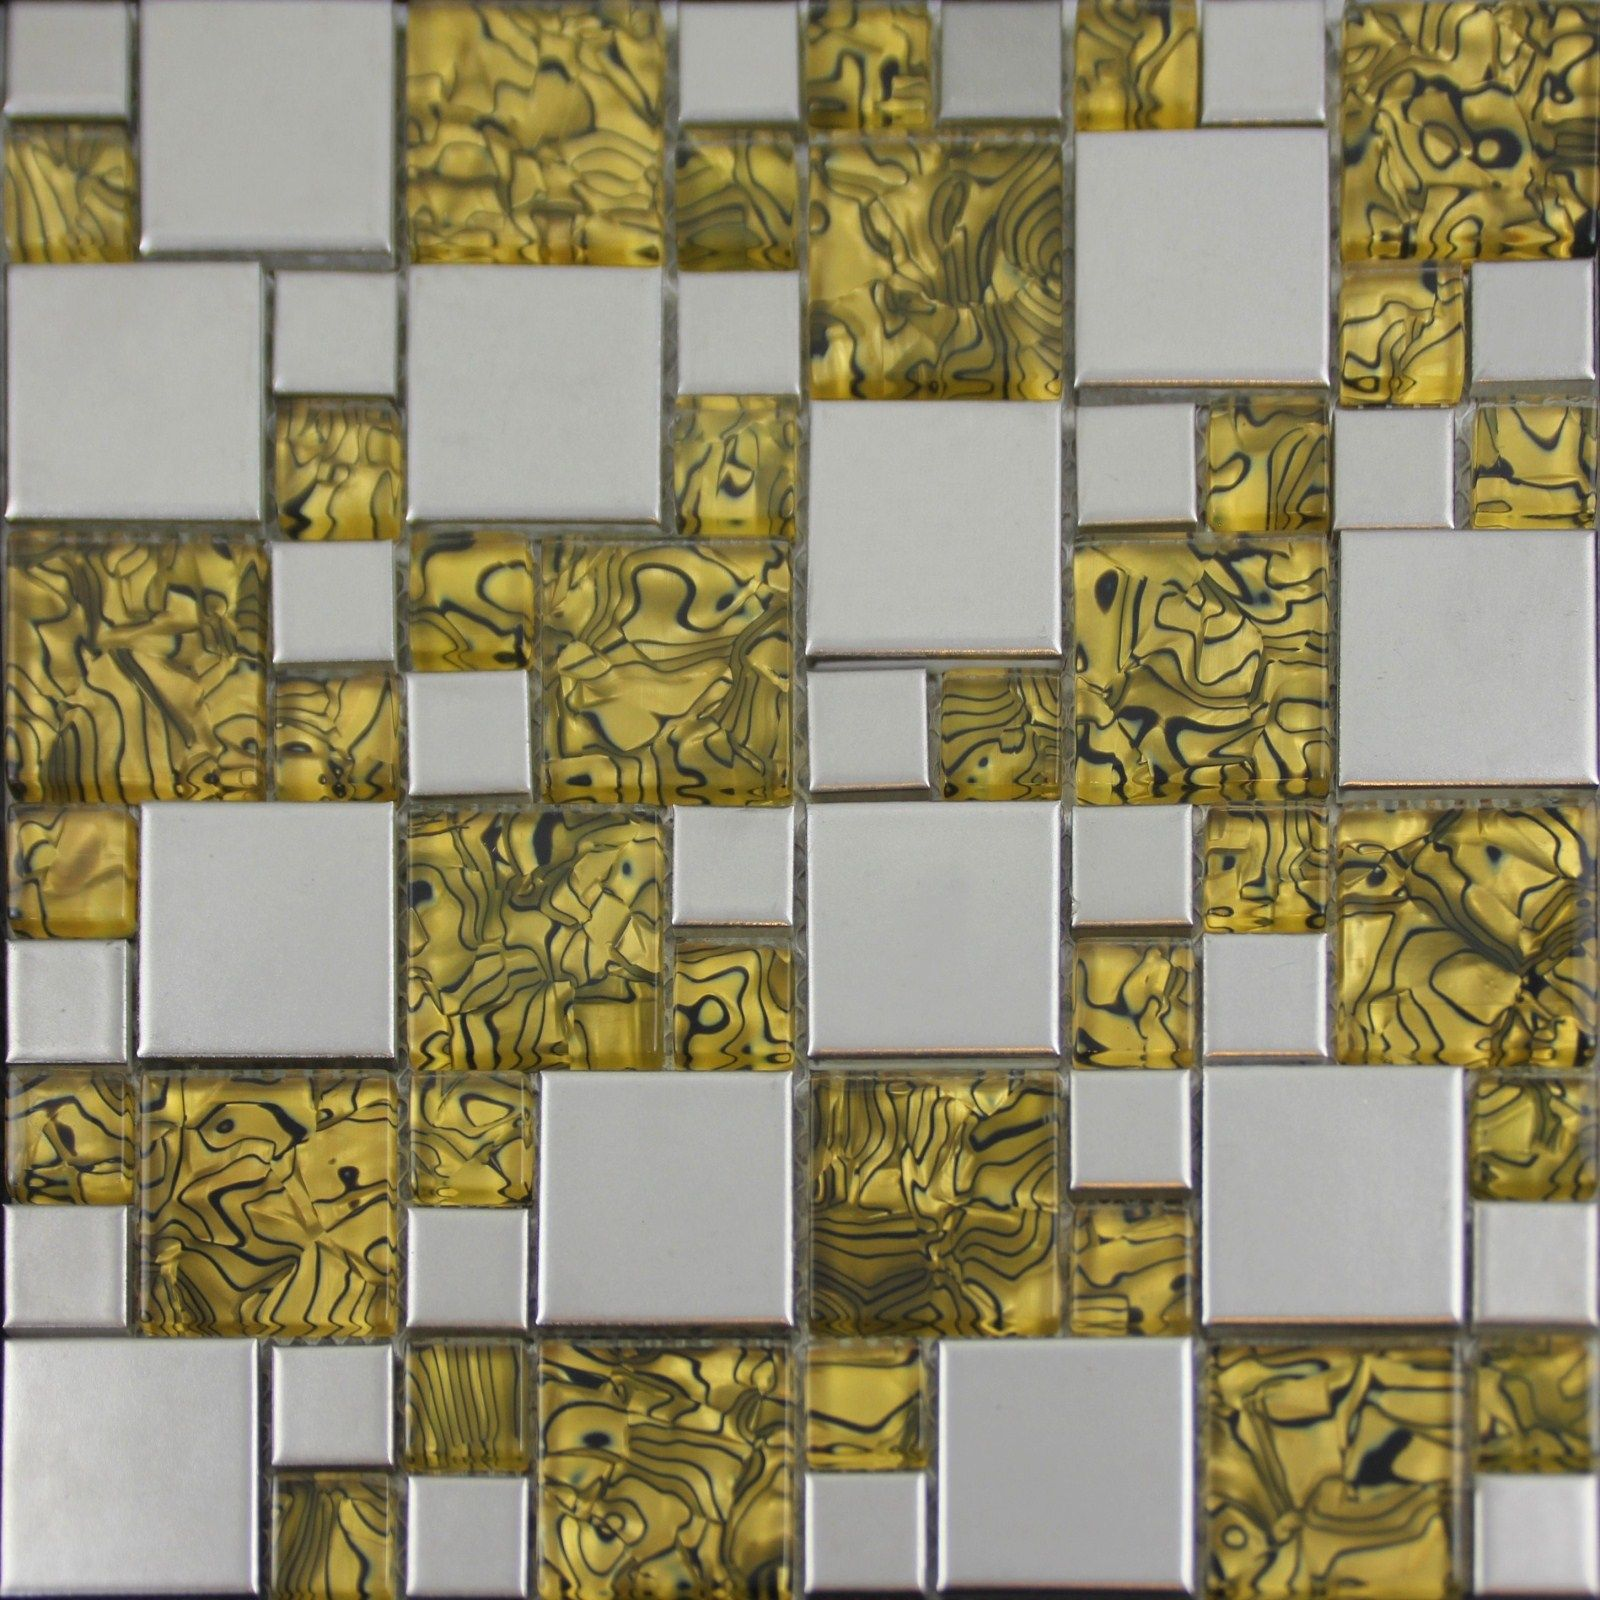 - Gold Glass And Porcelain Square Mosaic Tile Designs Plated Ceramic